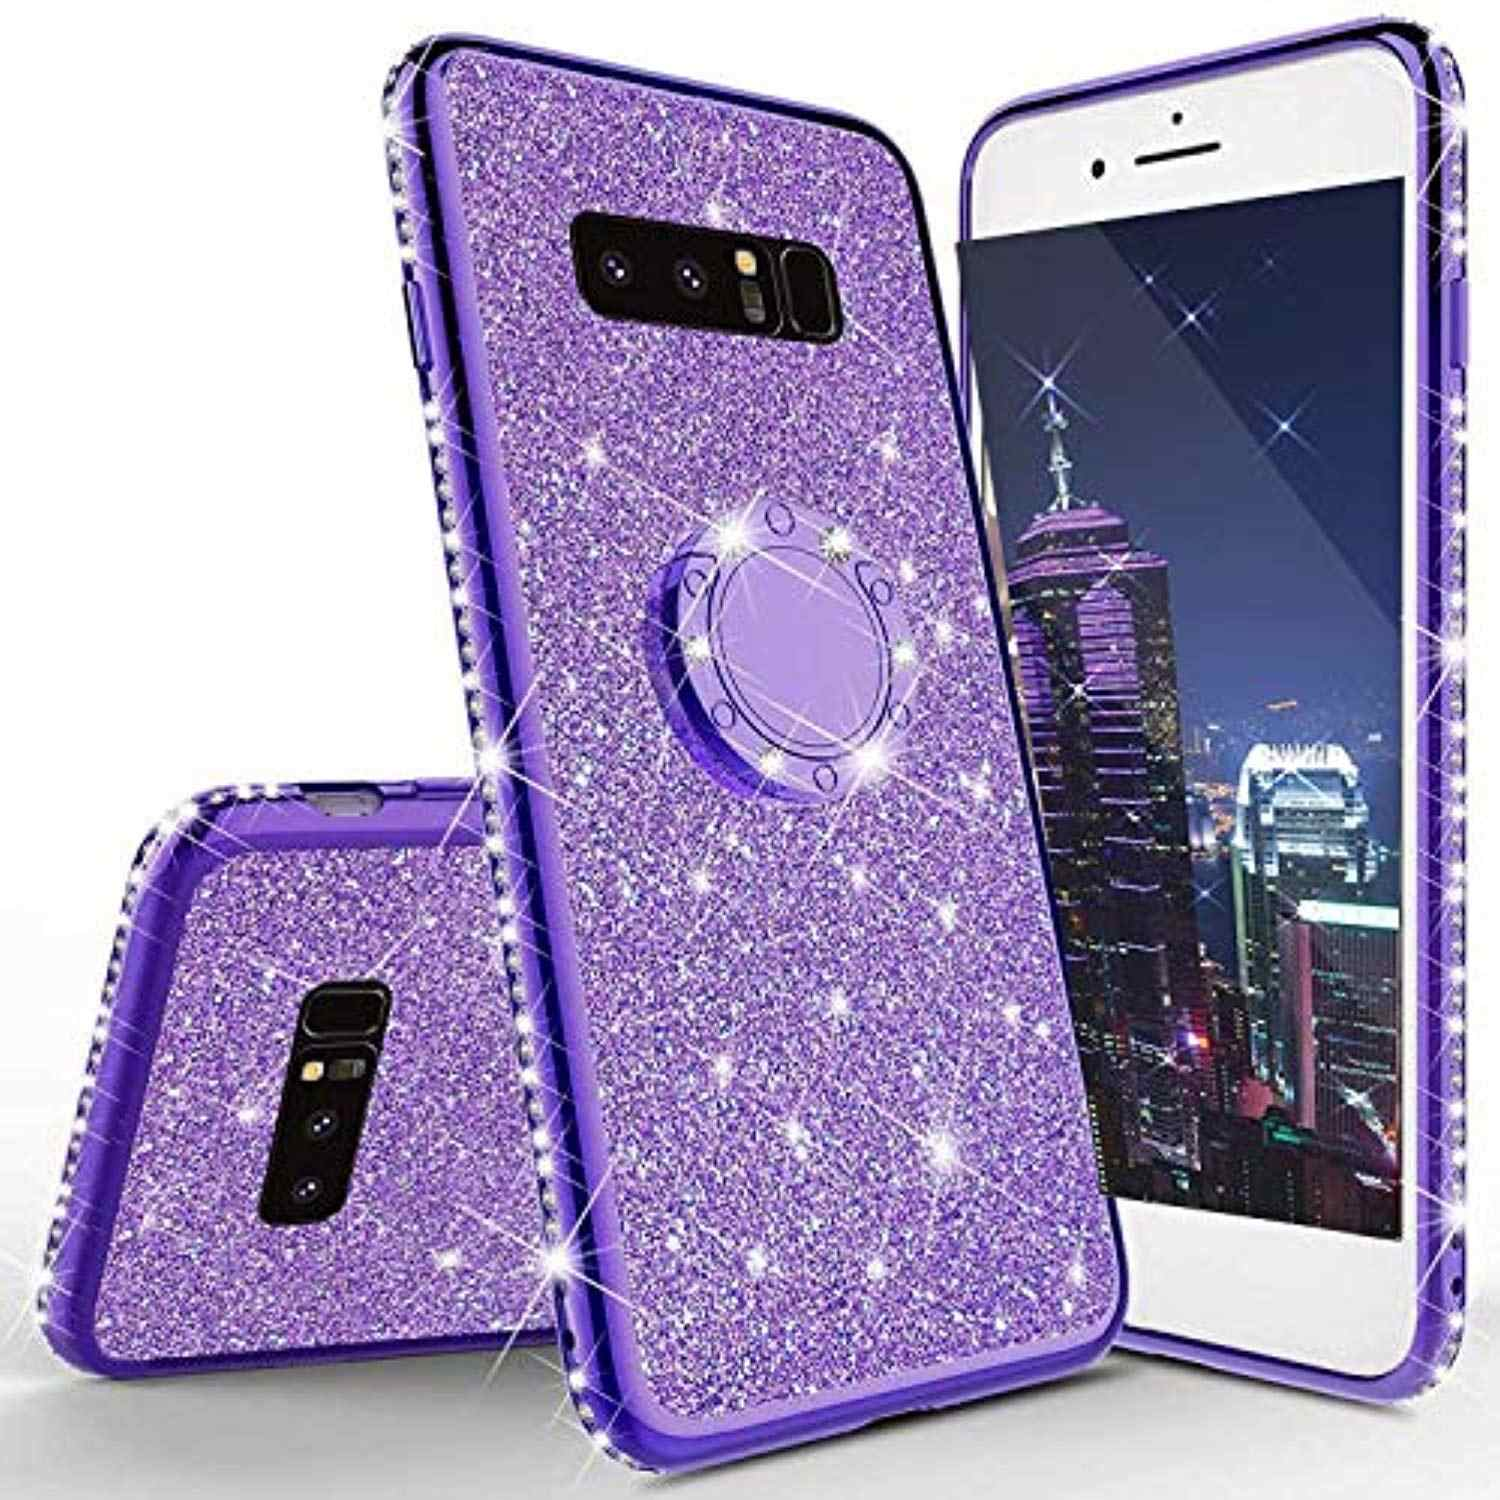 Luxury Ring Holder Stand Diamond Case for Samsung S10 Plus 5G S10E S9 S8 Note 10 Pro Cover TPU Soft Glitter Plating Phone Cases